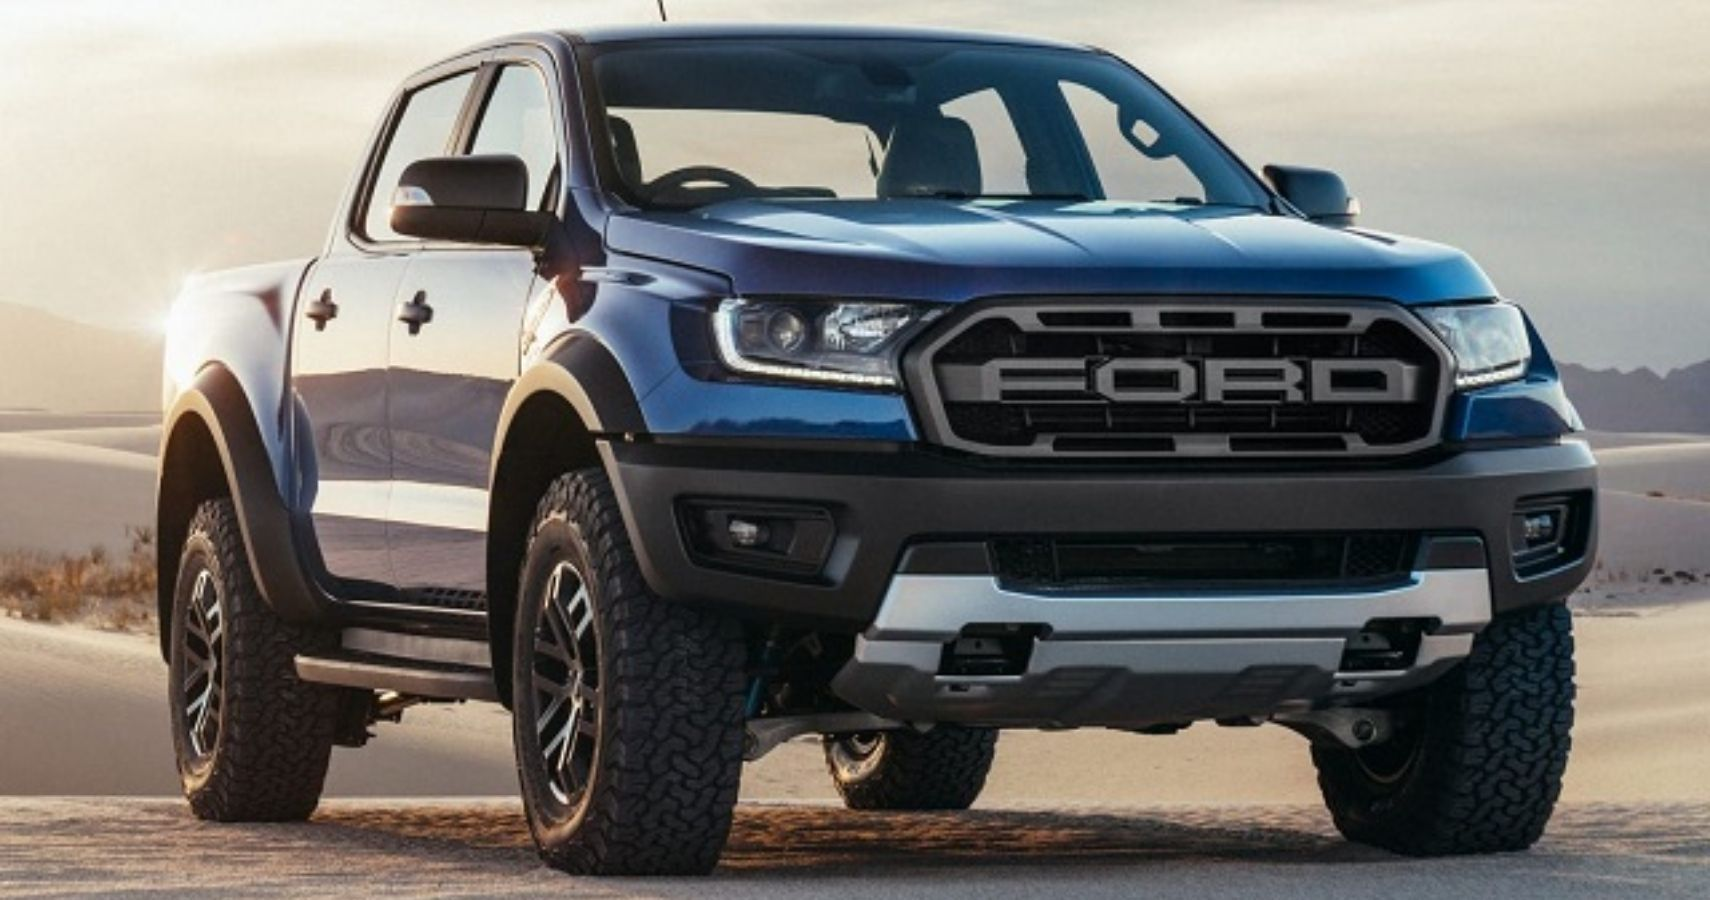 These Are The Best Modifications For Your Ford Ranger Raptor